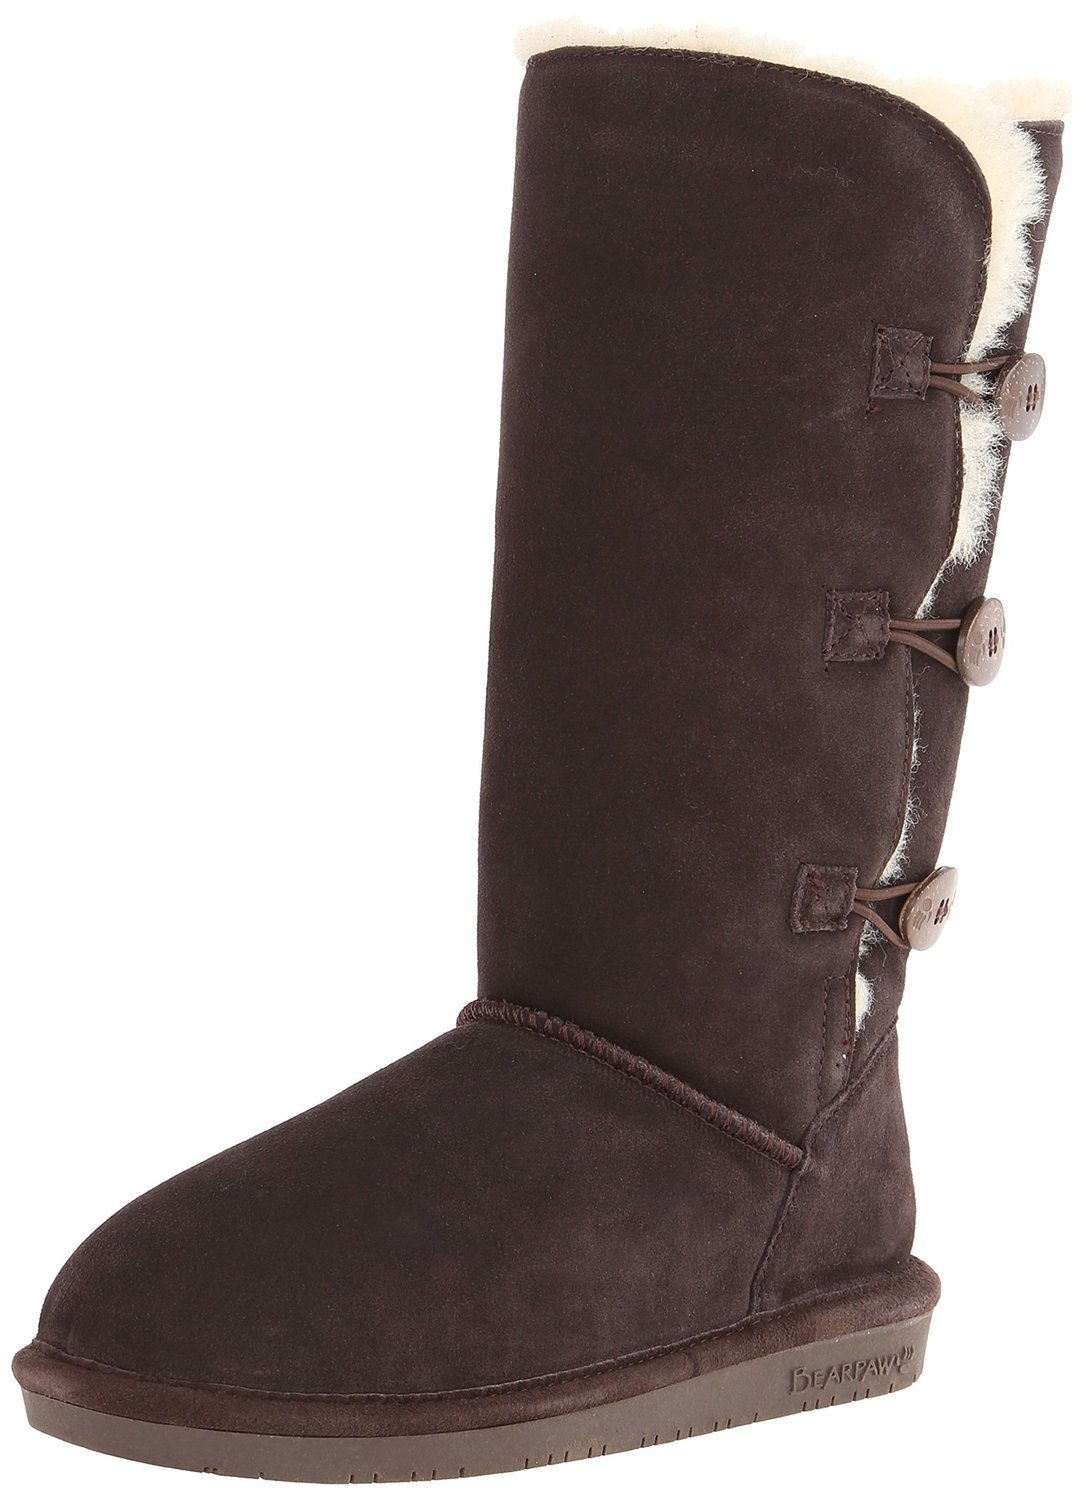 Bearpaw Lauren Snow Boot